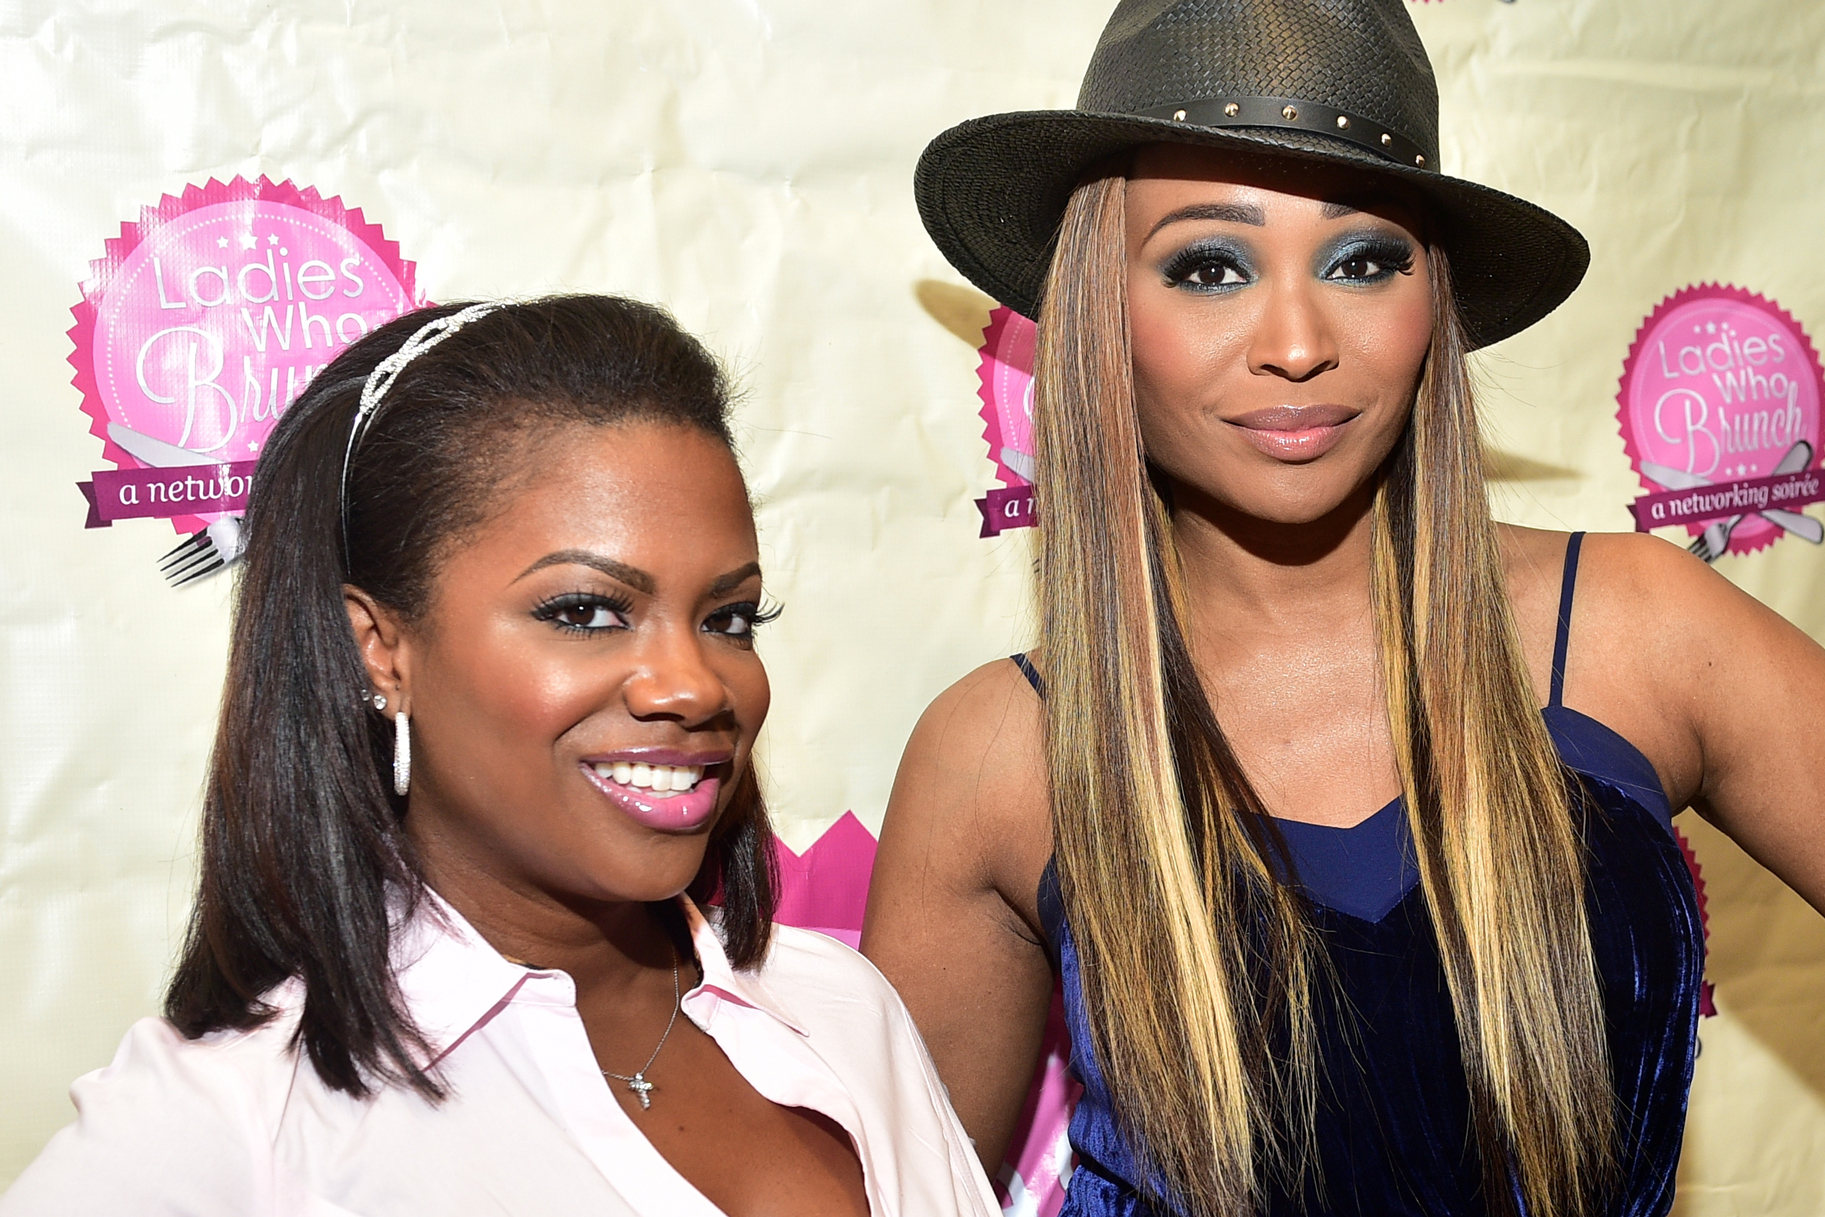 Kandi Burruss And Cynthia Bailey Hang Out At The Screening Of Fatale Movie Together - Check Out Their Photo